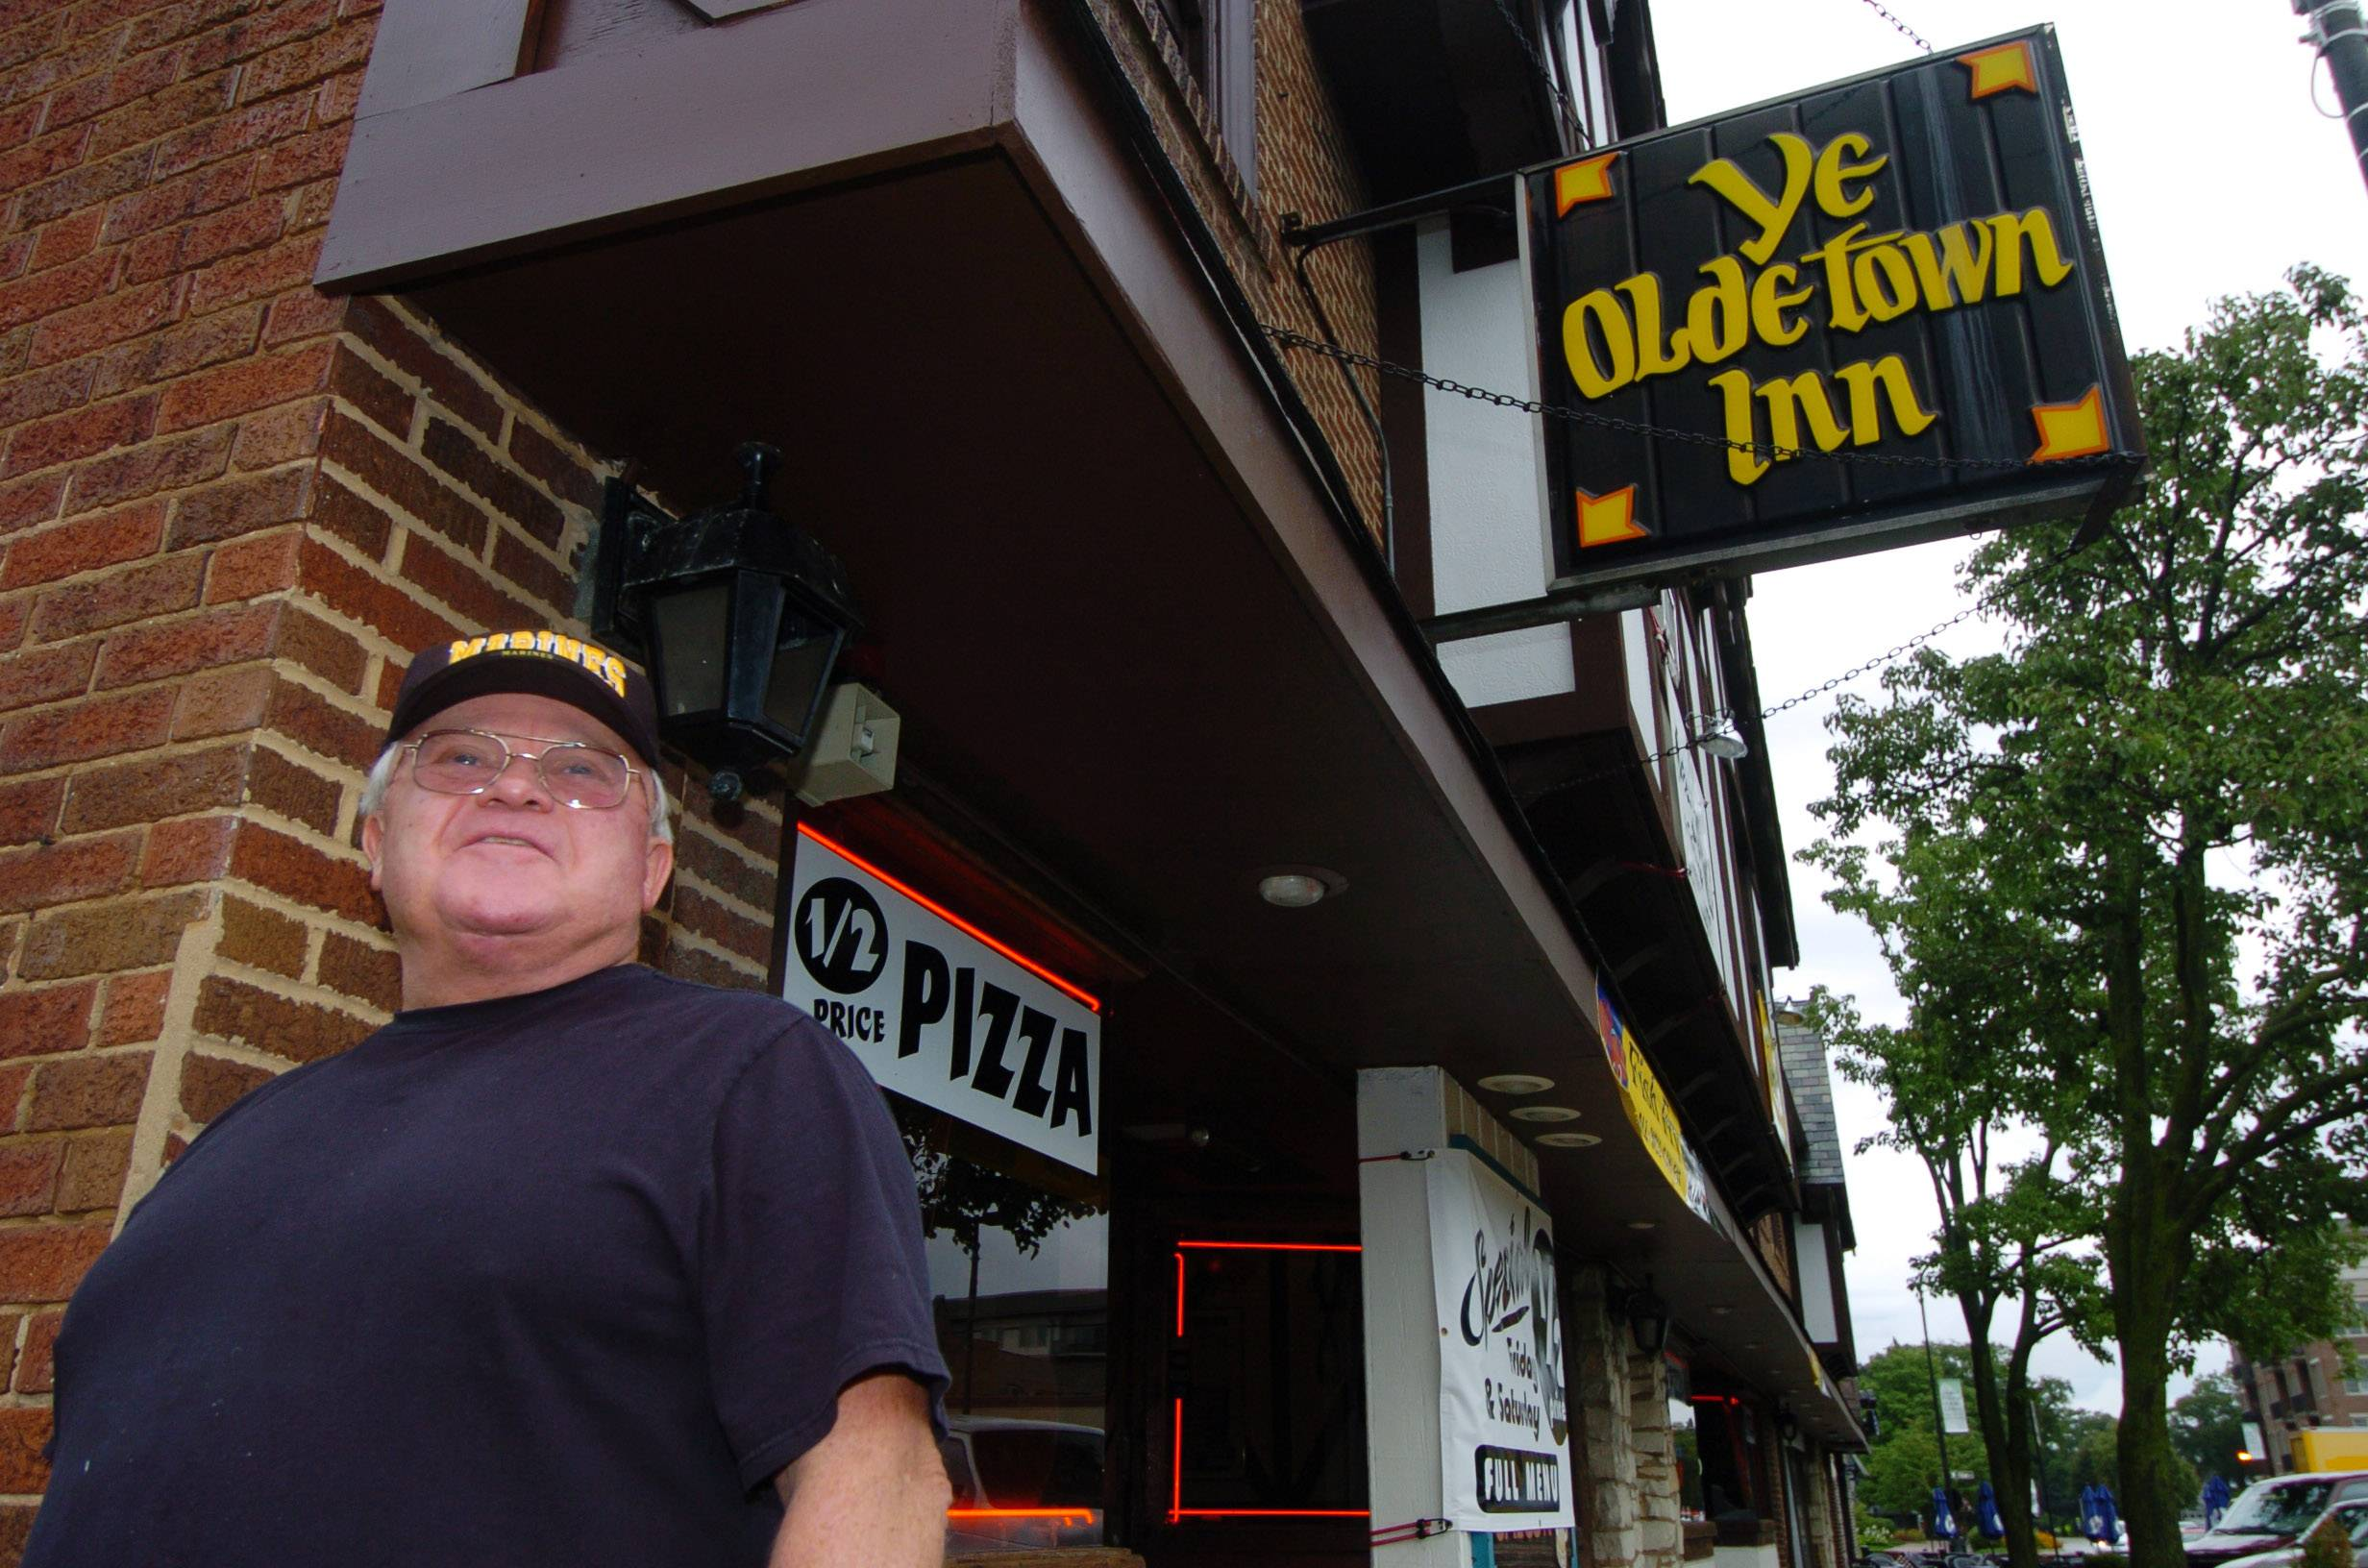 Tod Curtis, owner of Ye Olde Town Inn in Mount Prospect, filed a racketeering lawsuit alleging the village and a developer conspired to seize his property.